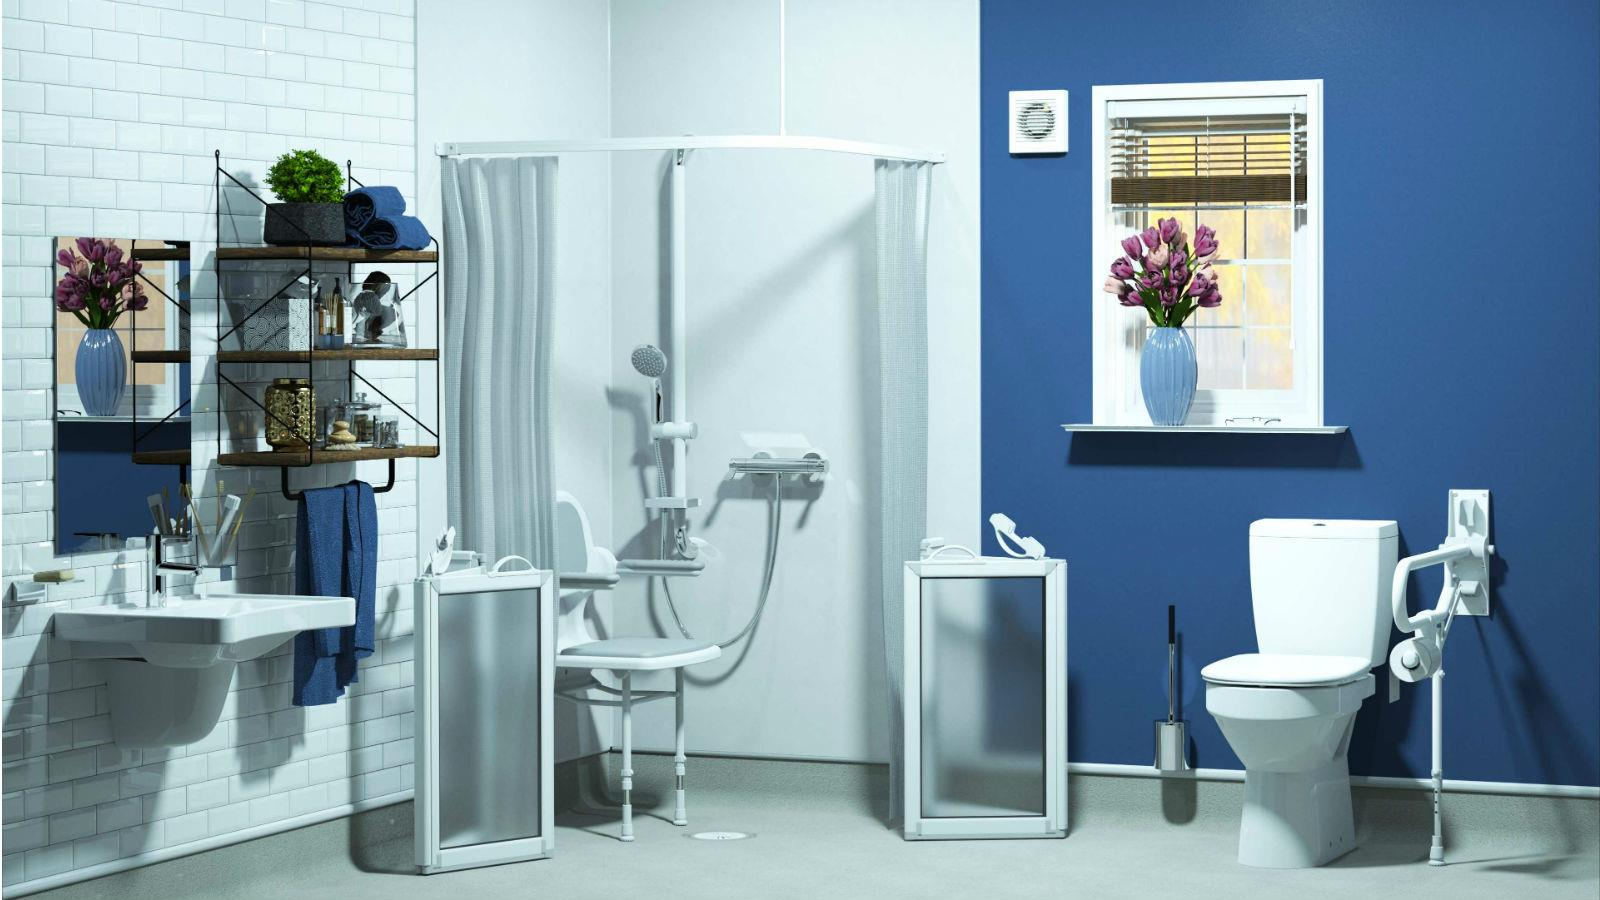 AKW launches new shower wall panelling range image